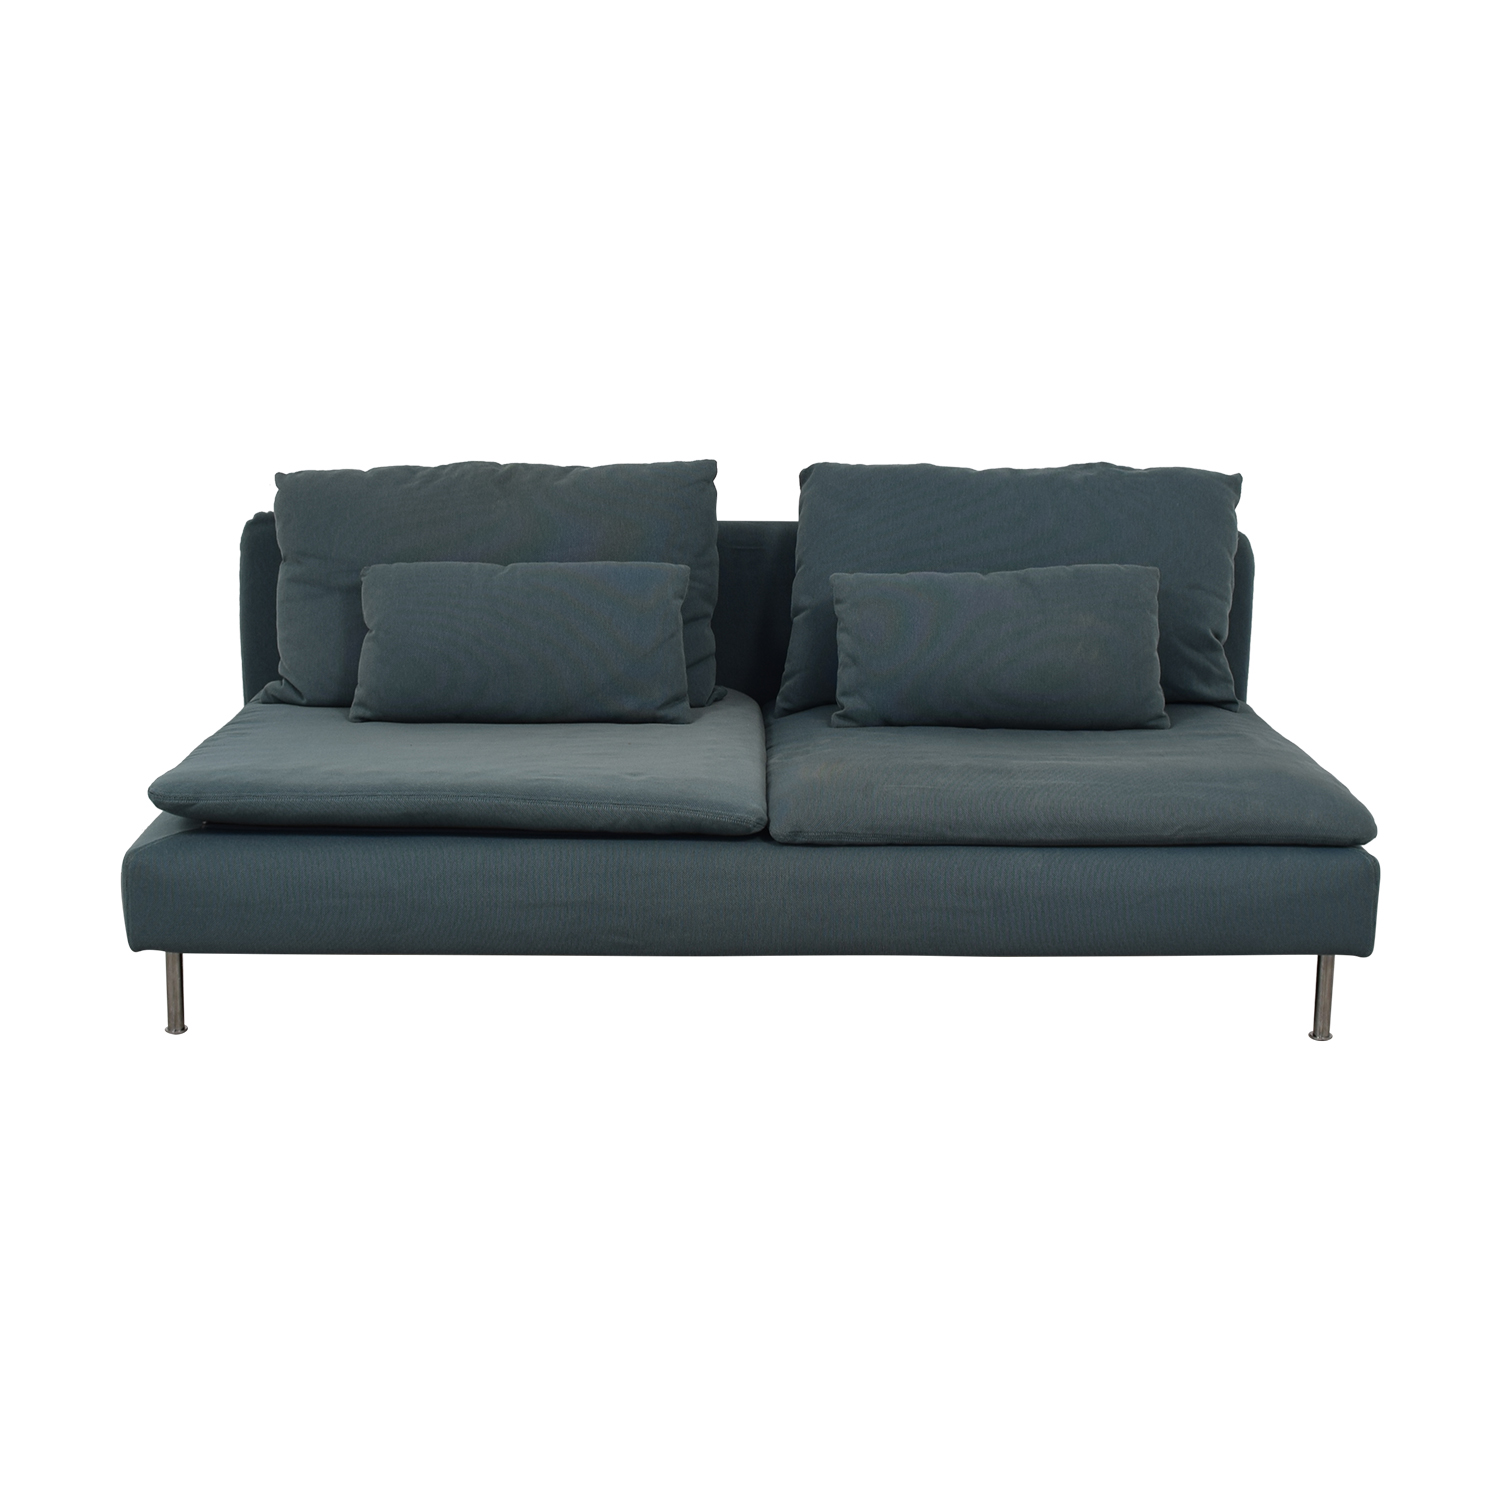 77 Off Ikea Ikea Grey Green Two Cushion Armless Couch Sofas